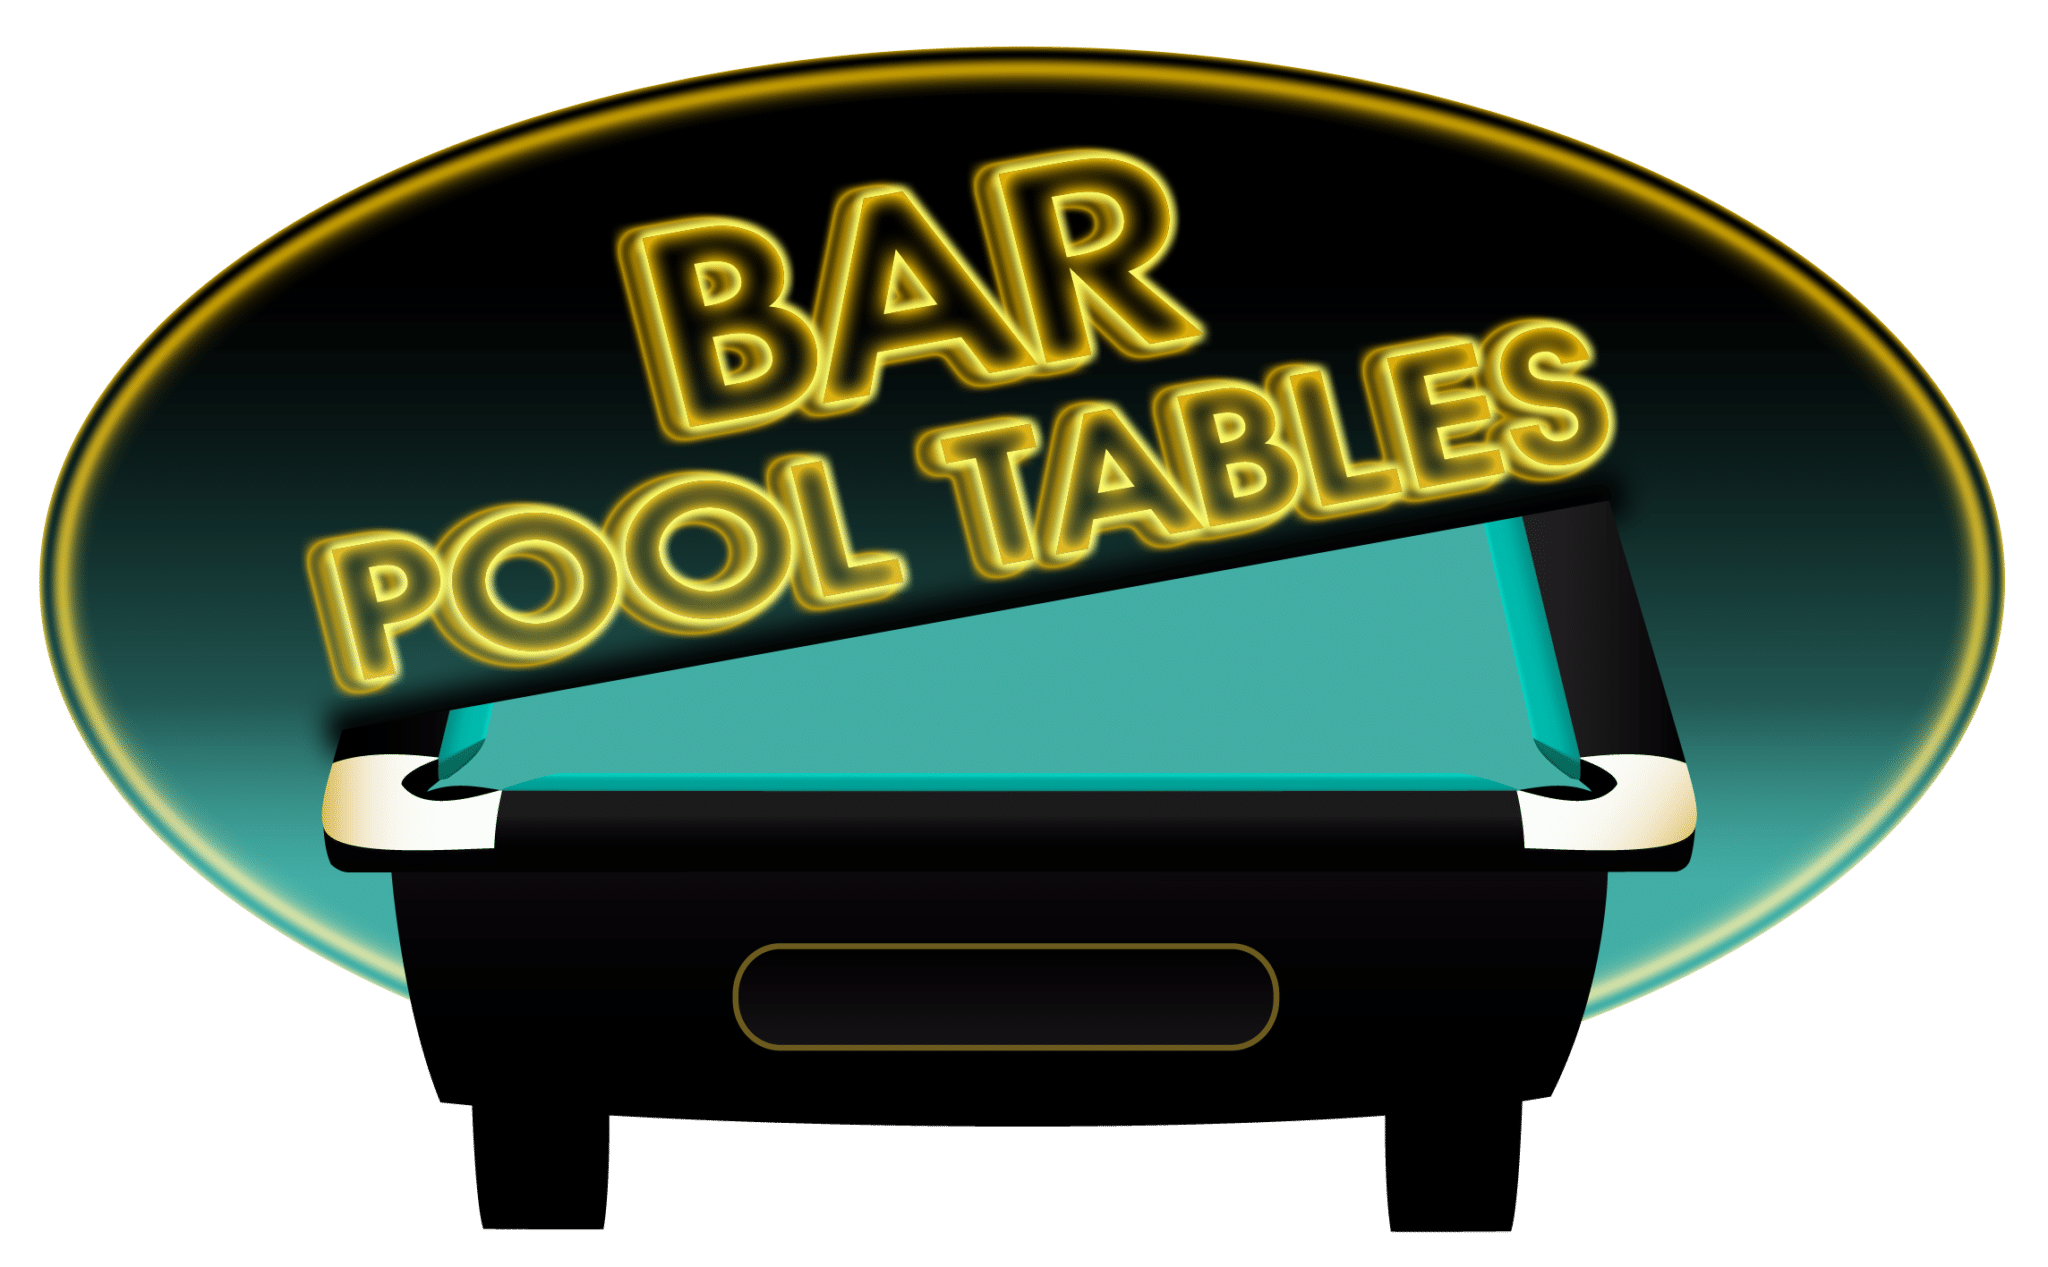 Bar Pool Tables Logo